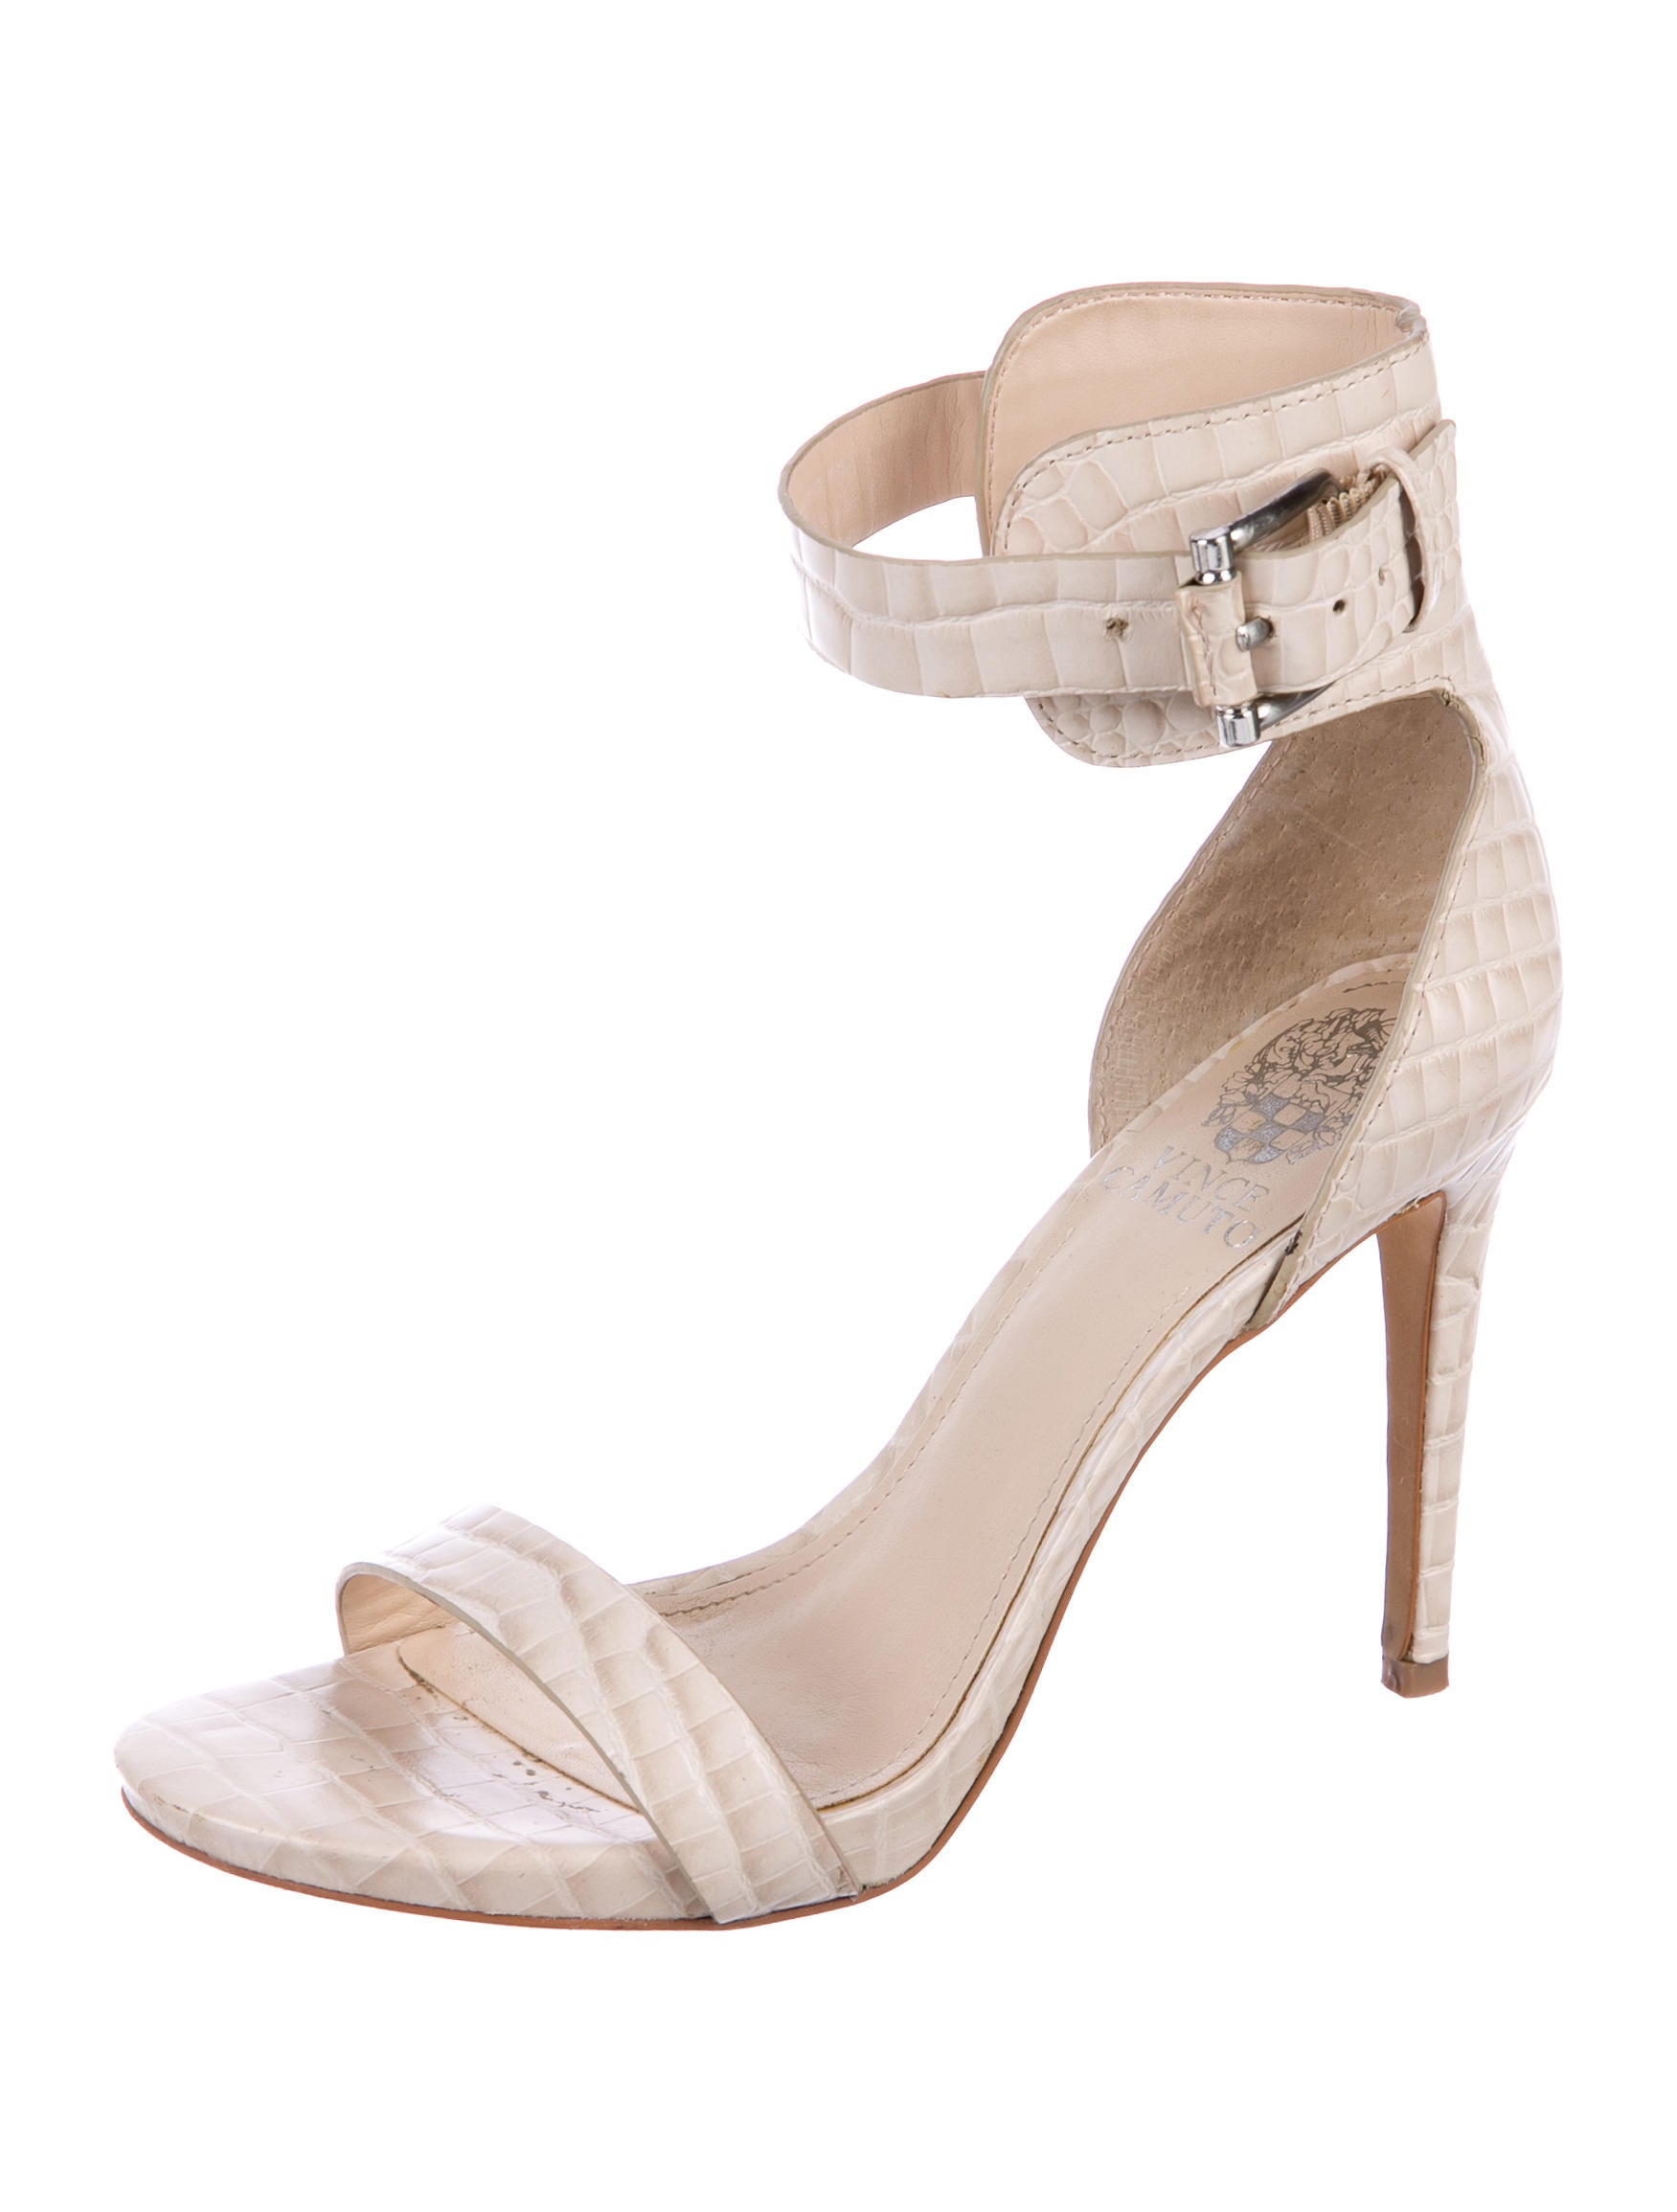 238168e63de Vince Camuto Farella Ankle Strap Sandals - Shoes - WV420266